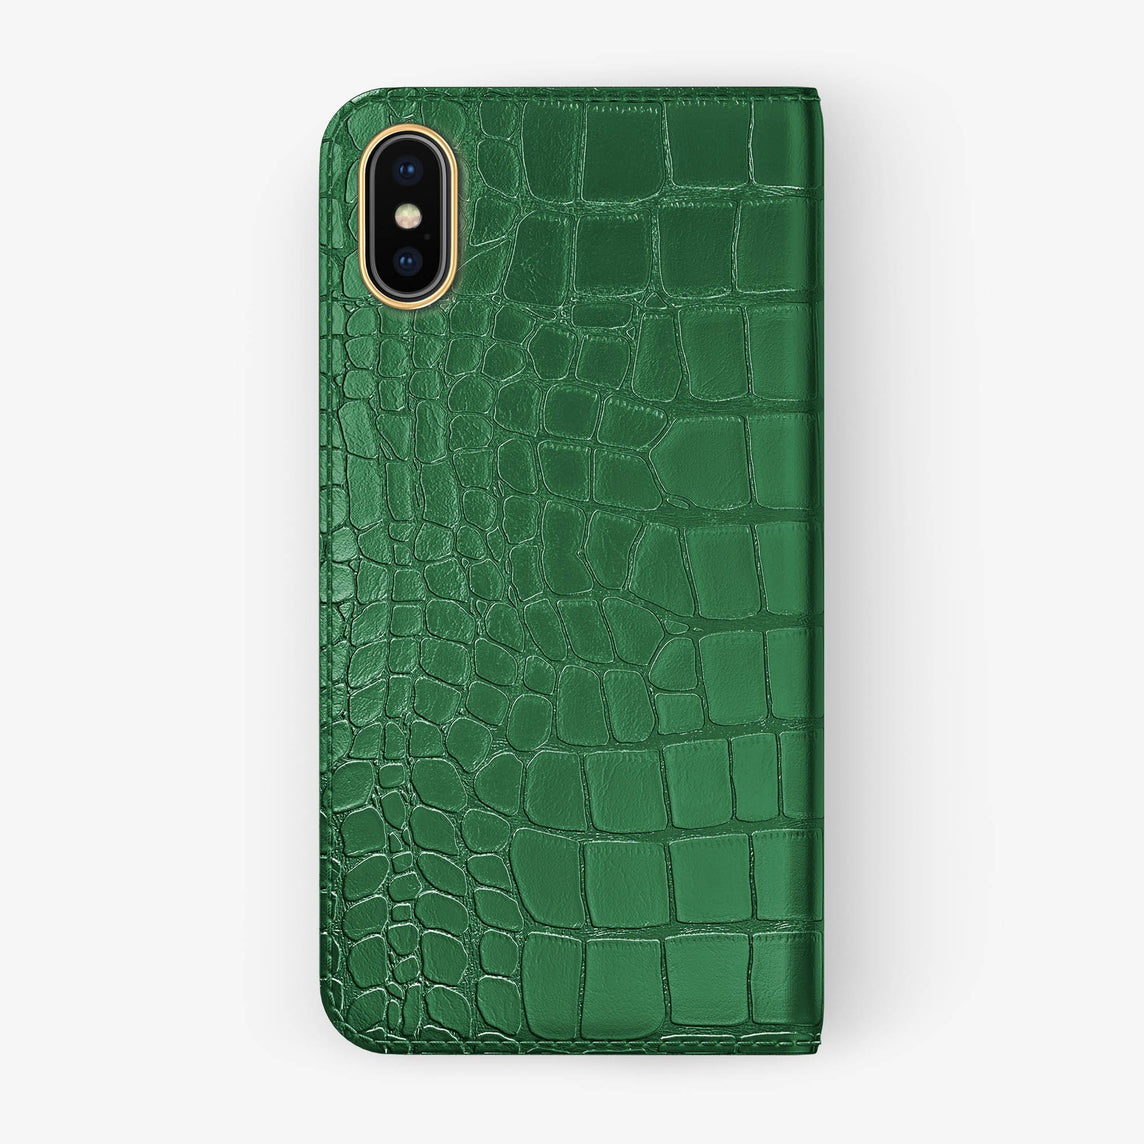 Green Alligator iPhone Folio Case for iPhone X finishing yellow gold - Hadoro Luxury Cases